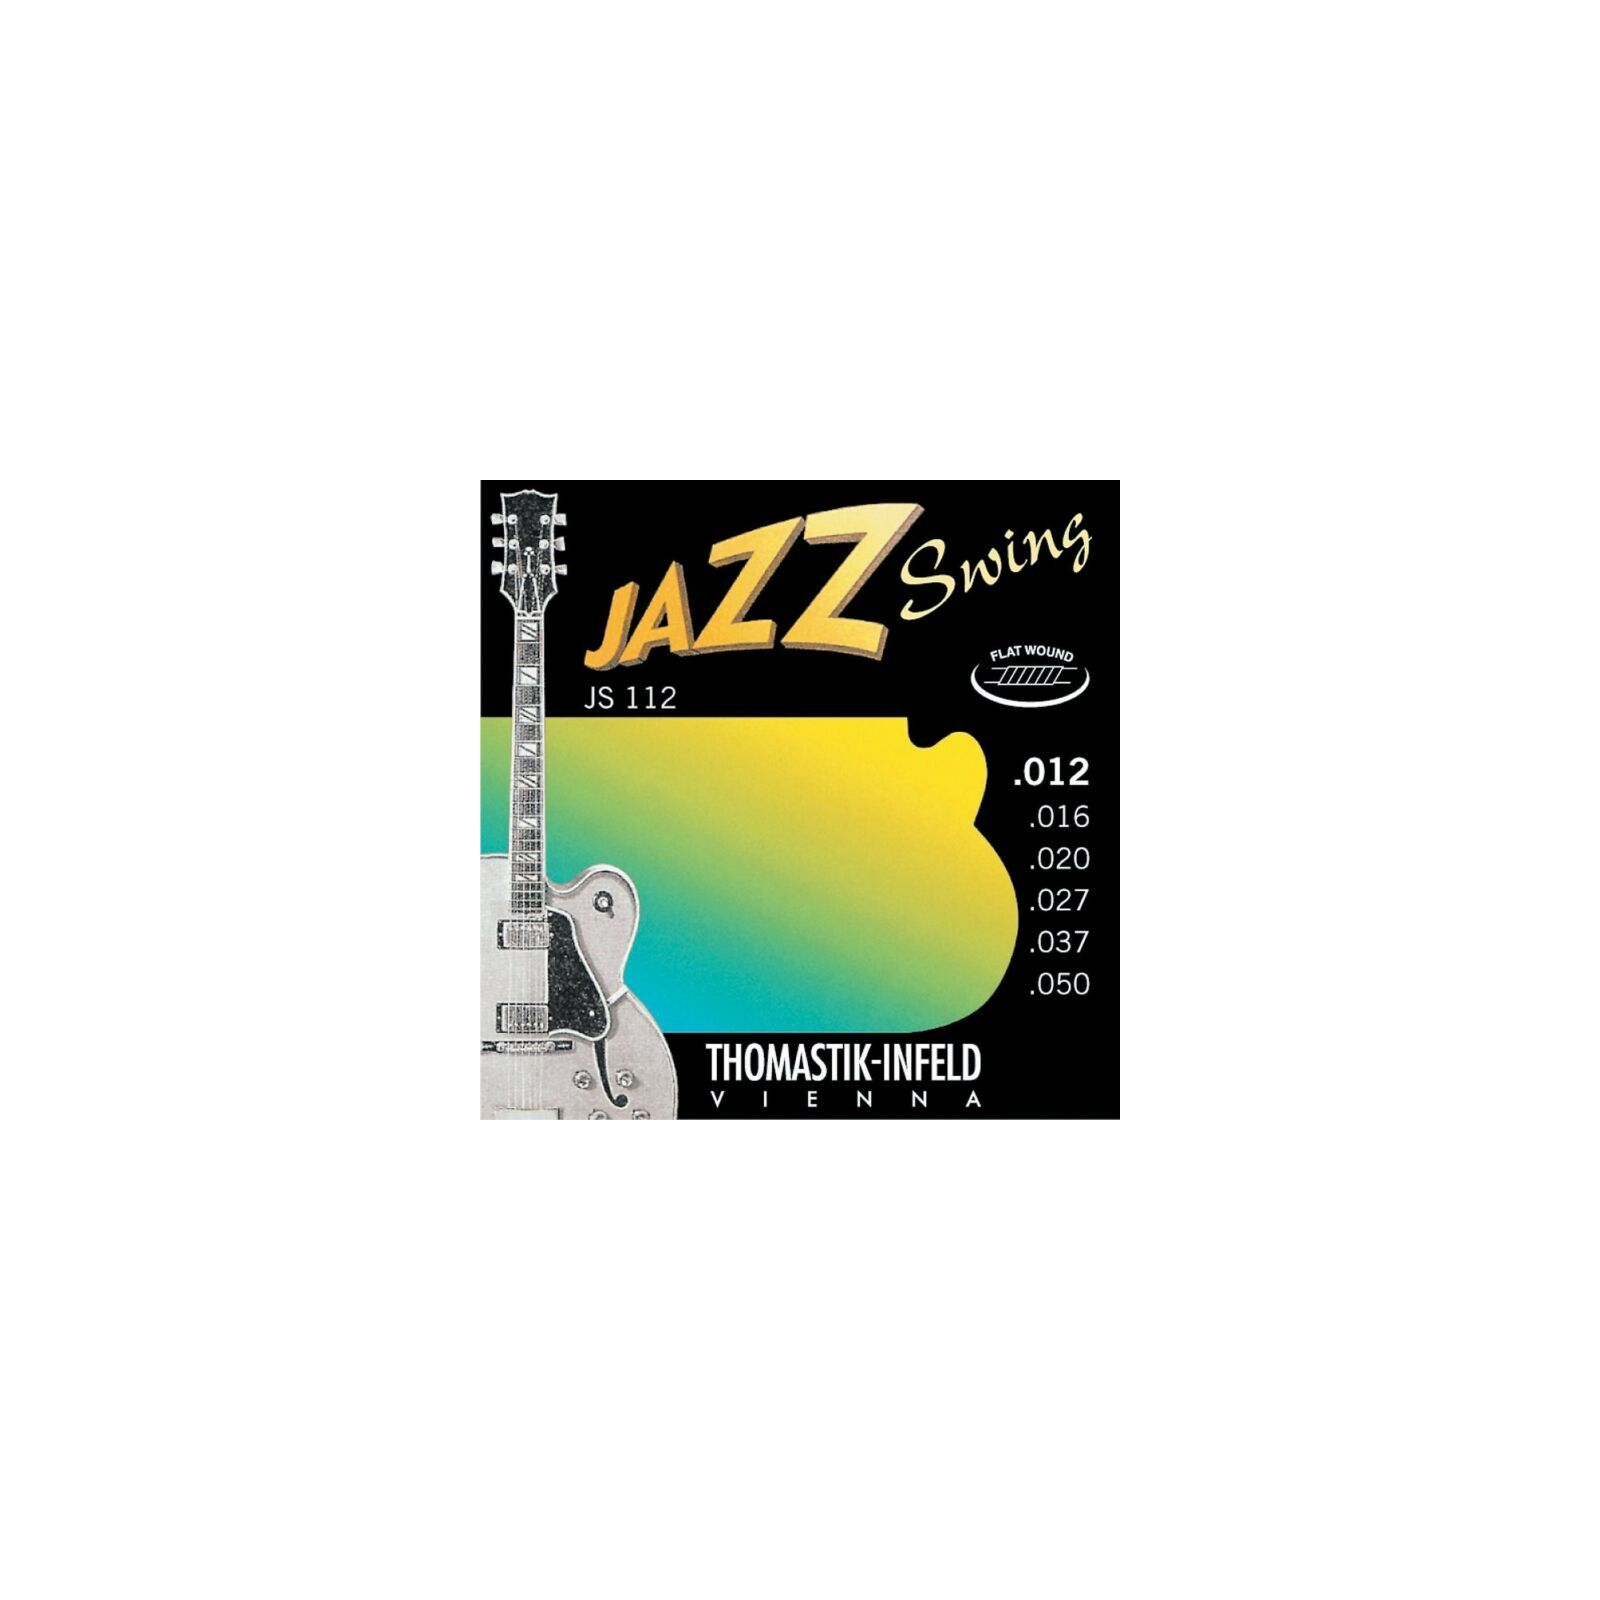 Thomastik-Infeld Jazz Swing Flatwound Electric Guitar Strings - med/lite 12-50 JS112